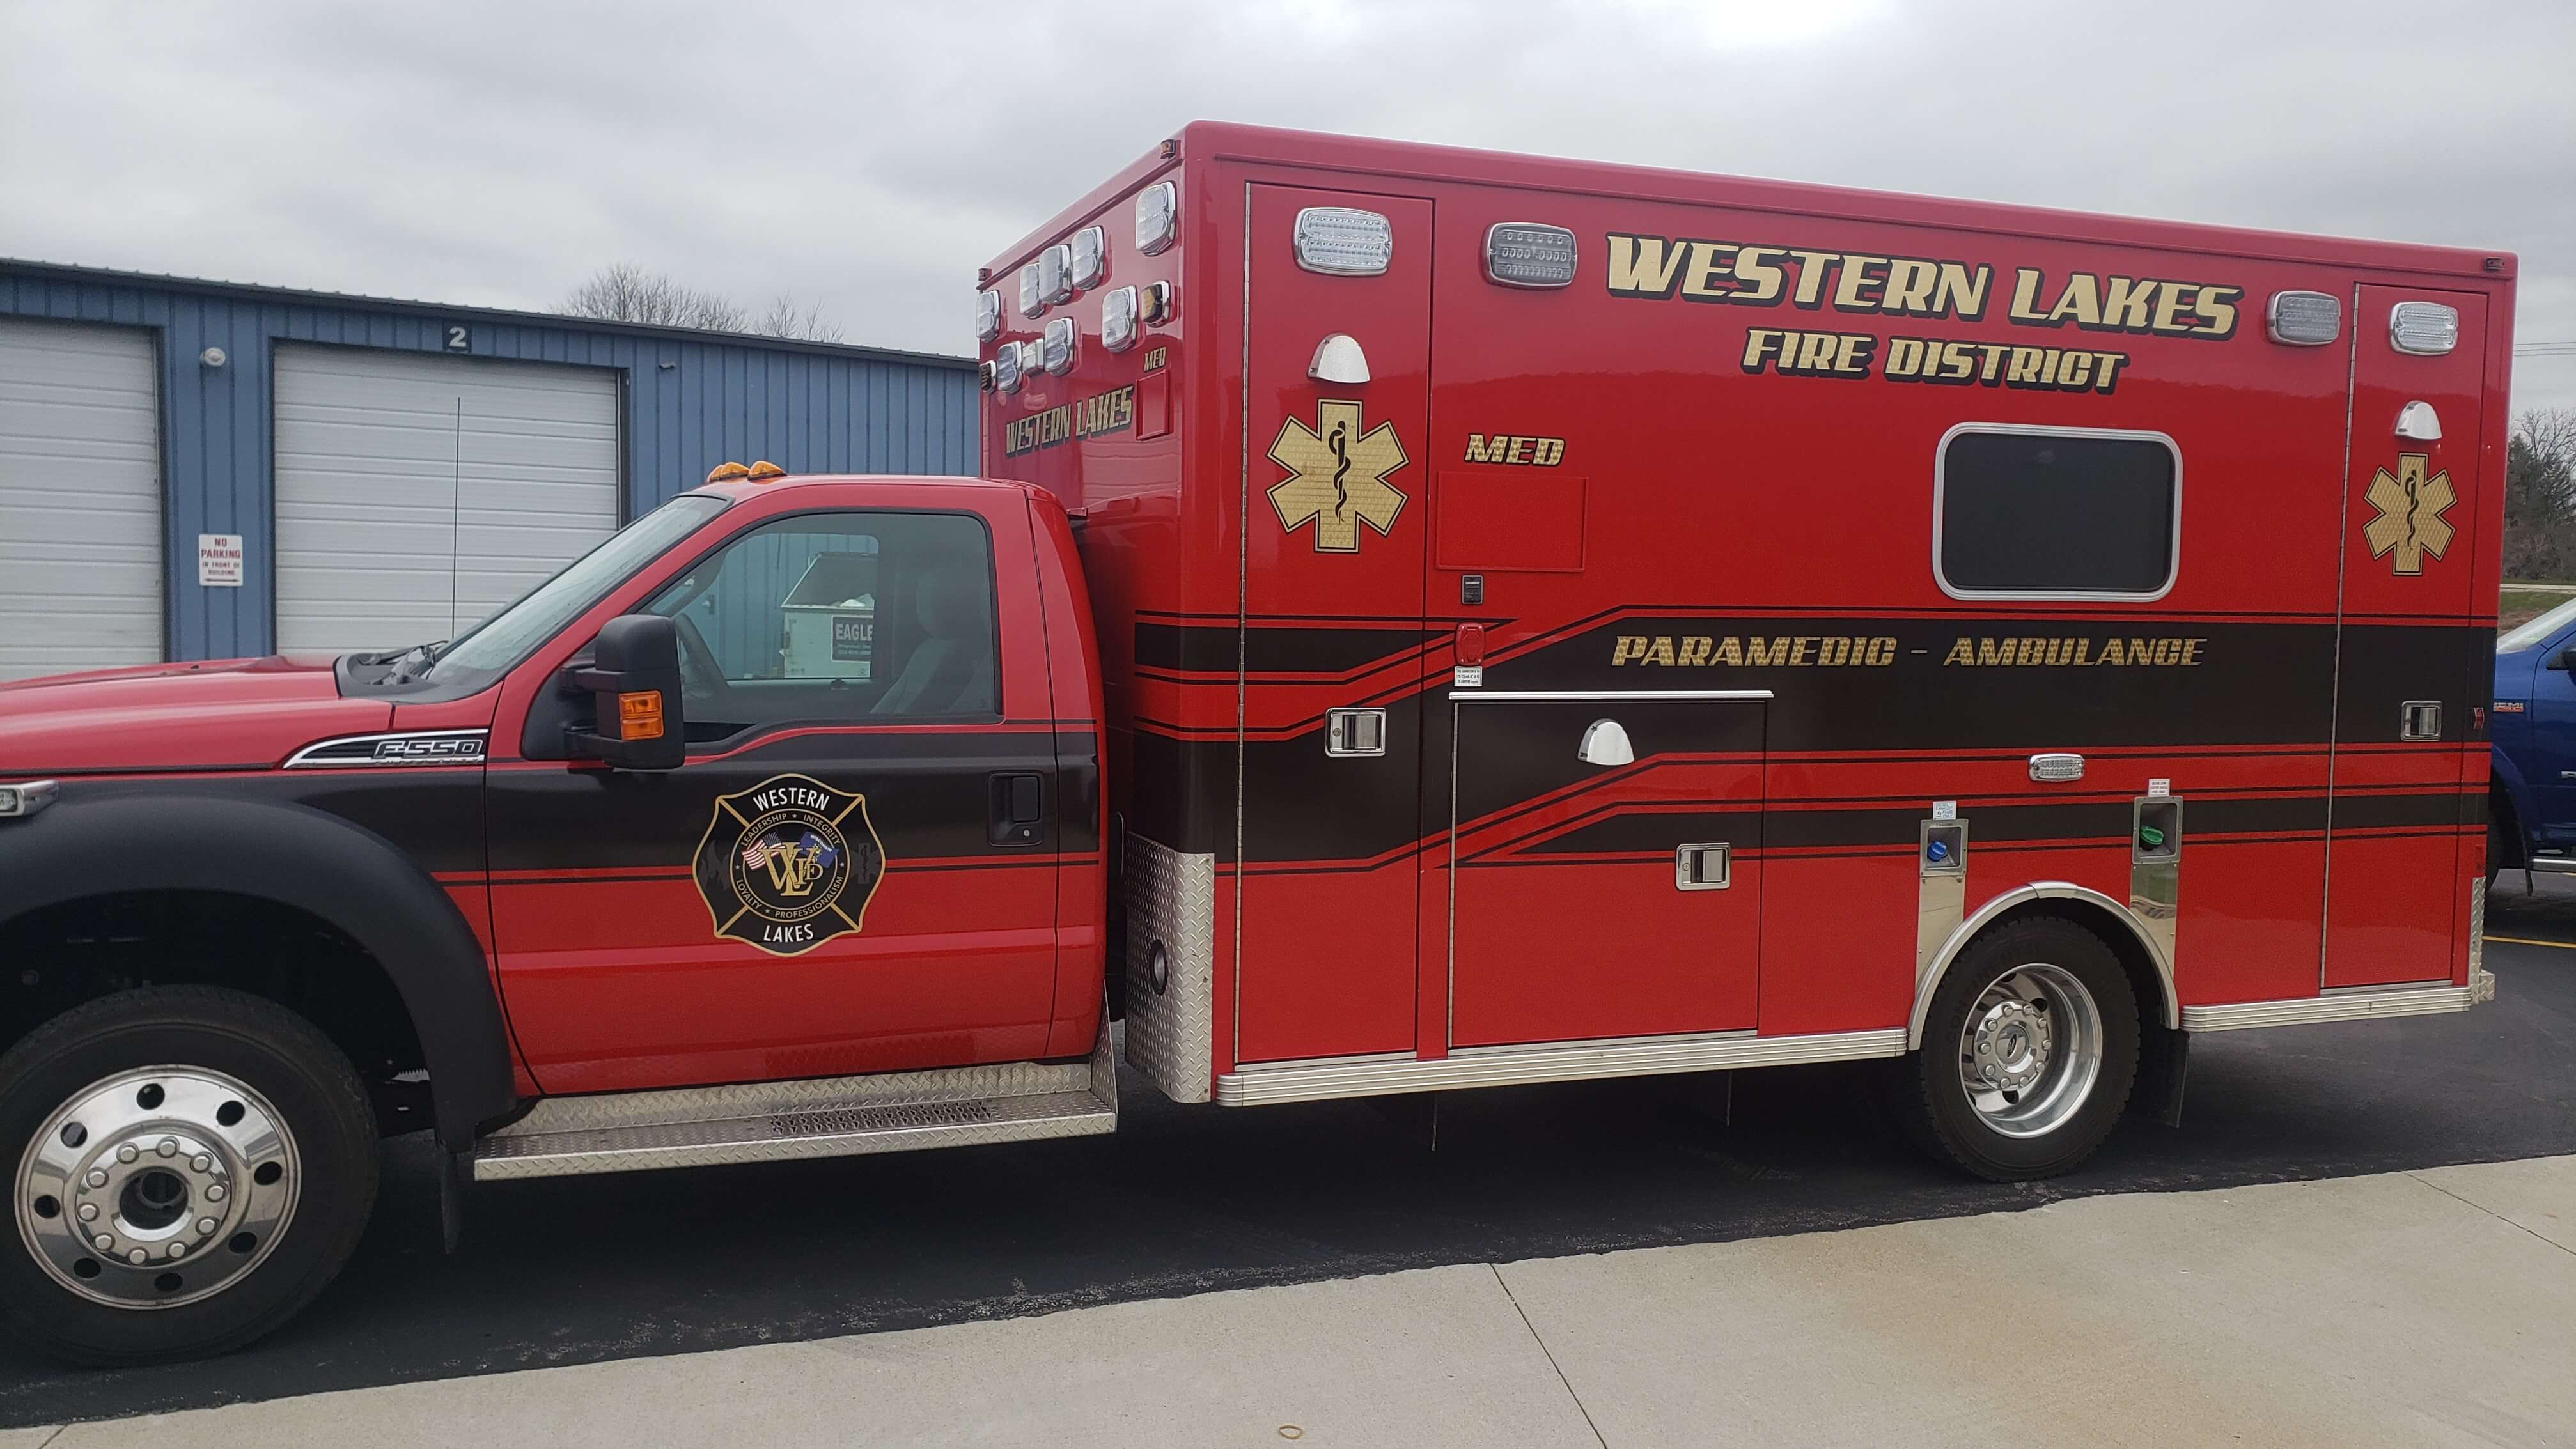 City of Waukesha Ambulance with High Reflective, 24k Gold Leaf Vinyl and stripes applied